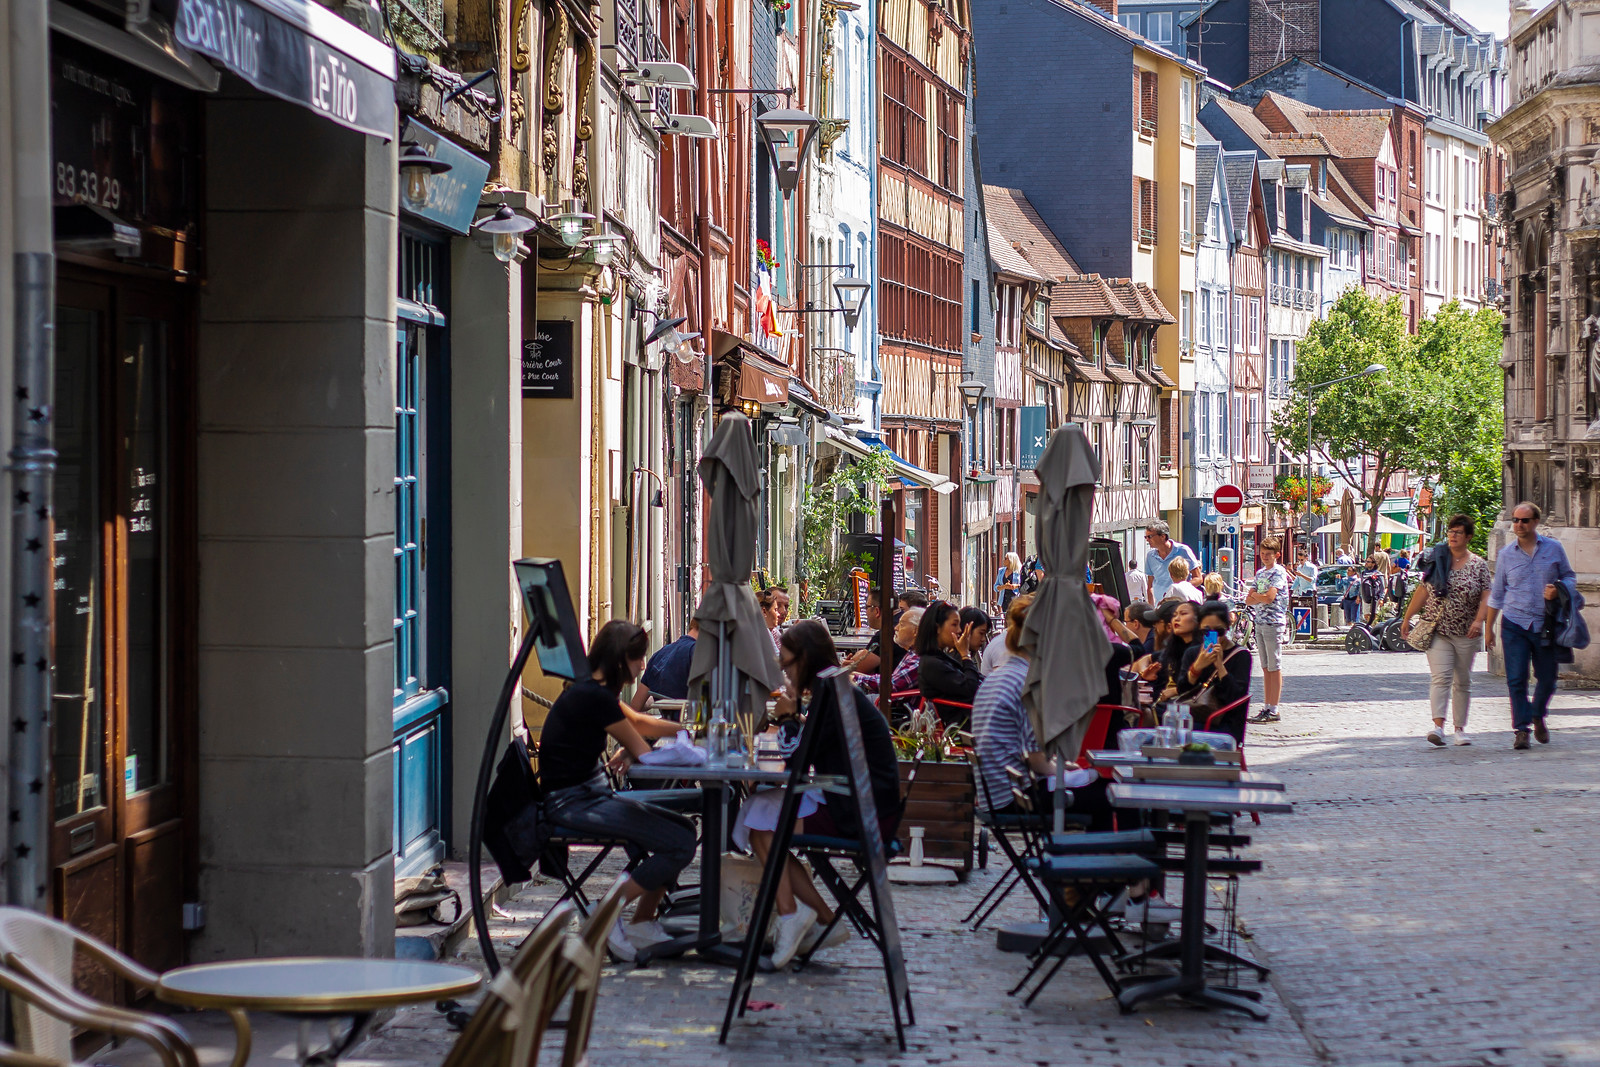 Rouen's Old Town scene - cfes, cobble street, people chilling out